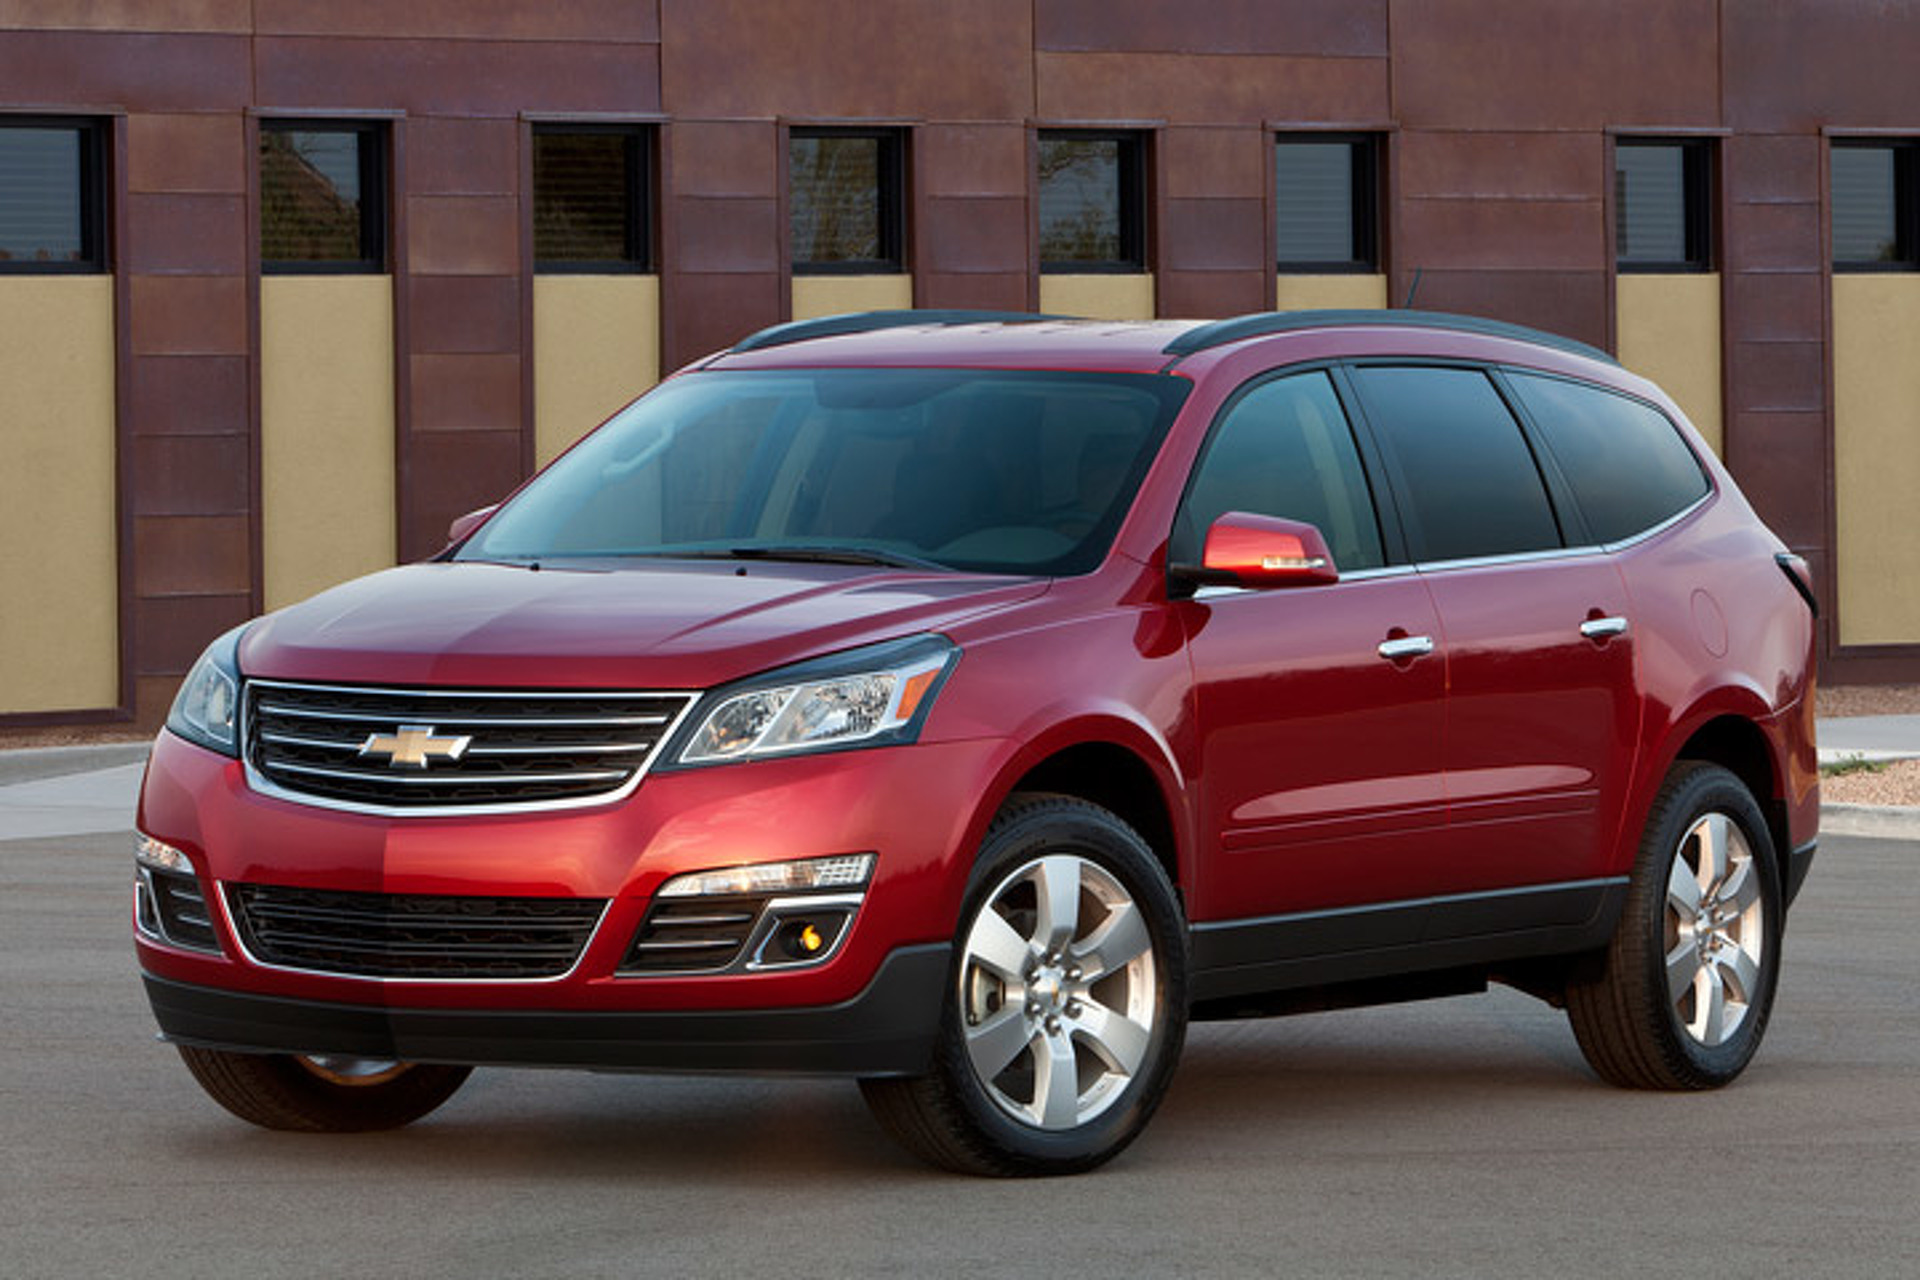 Chevrolet Expected to Add Another Crossover SUV in 2017